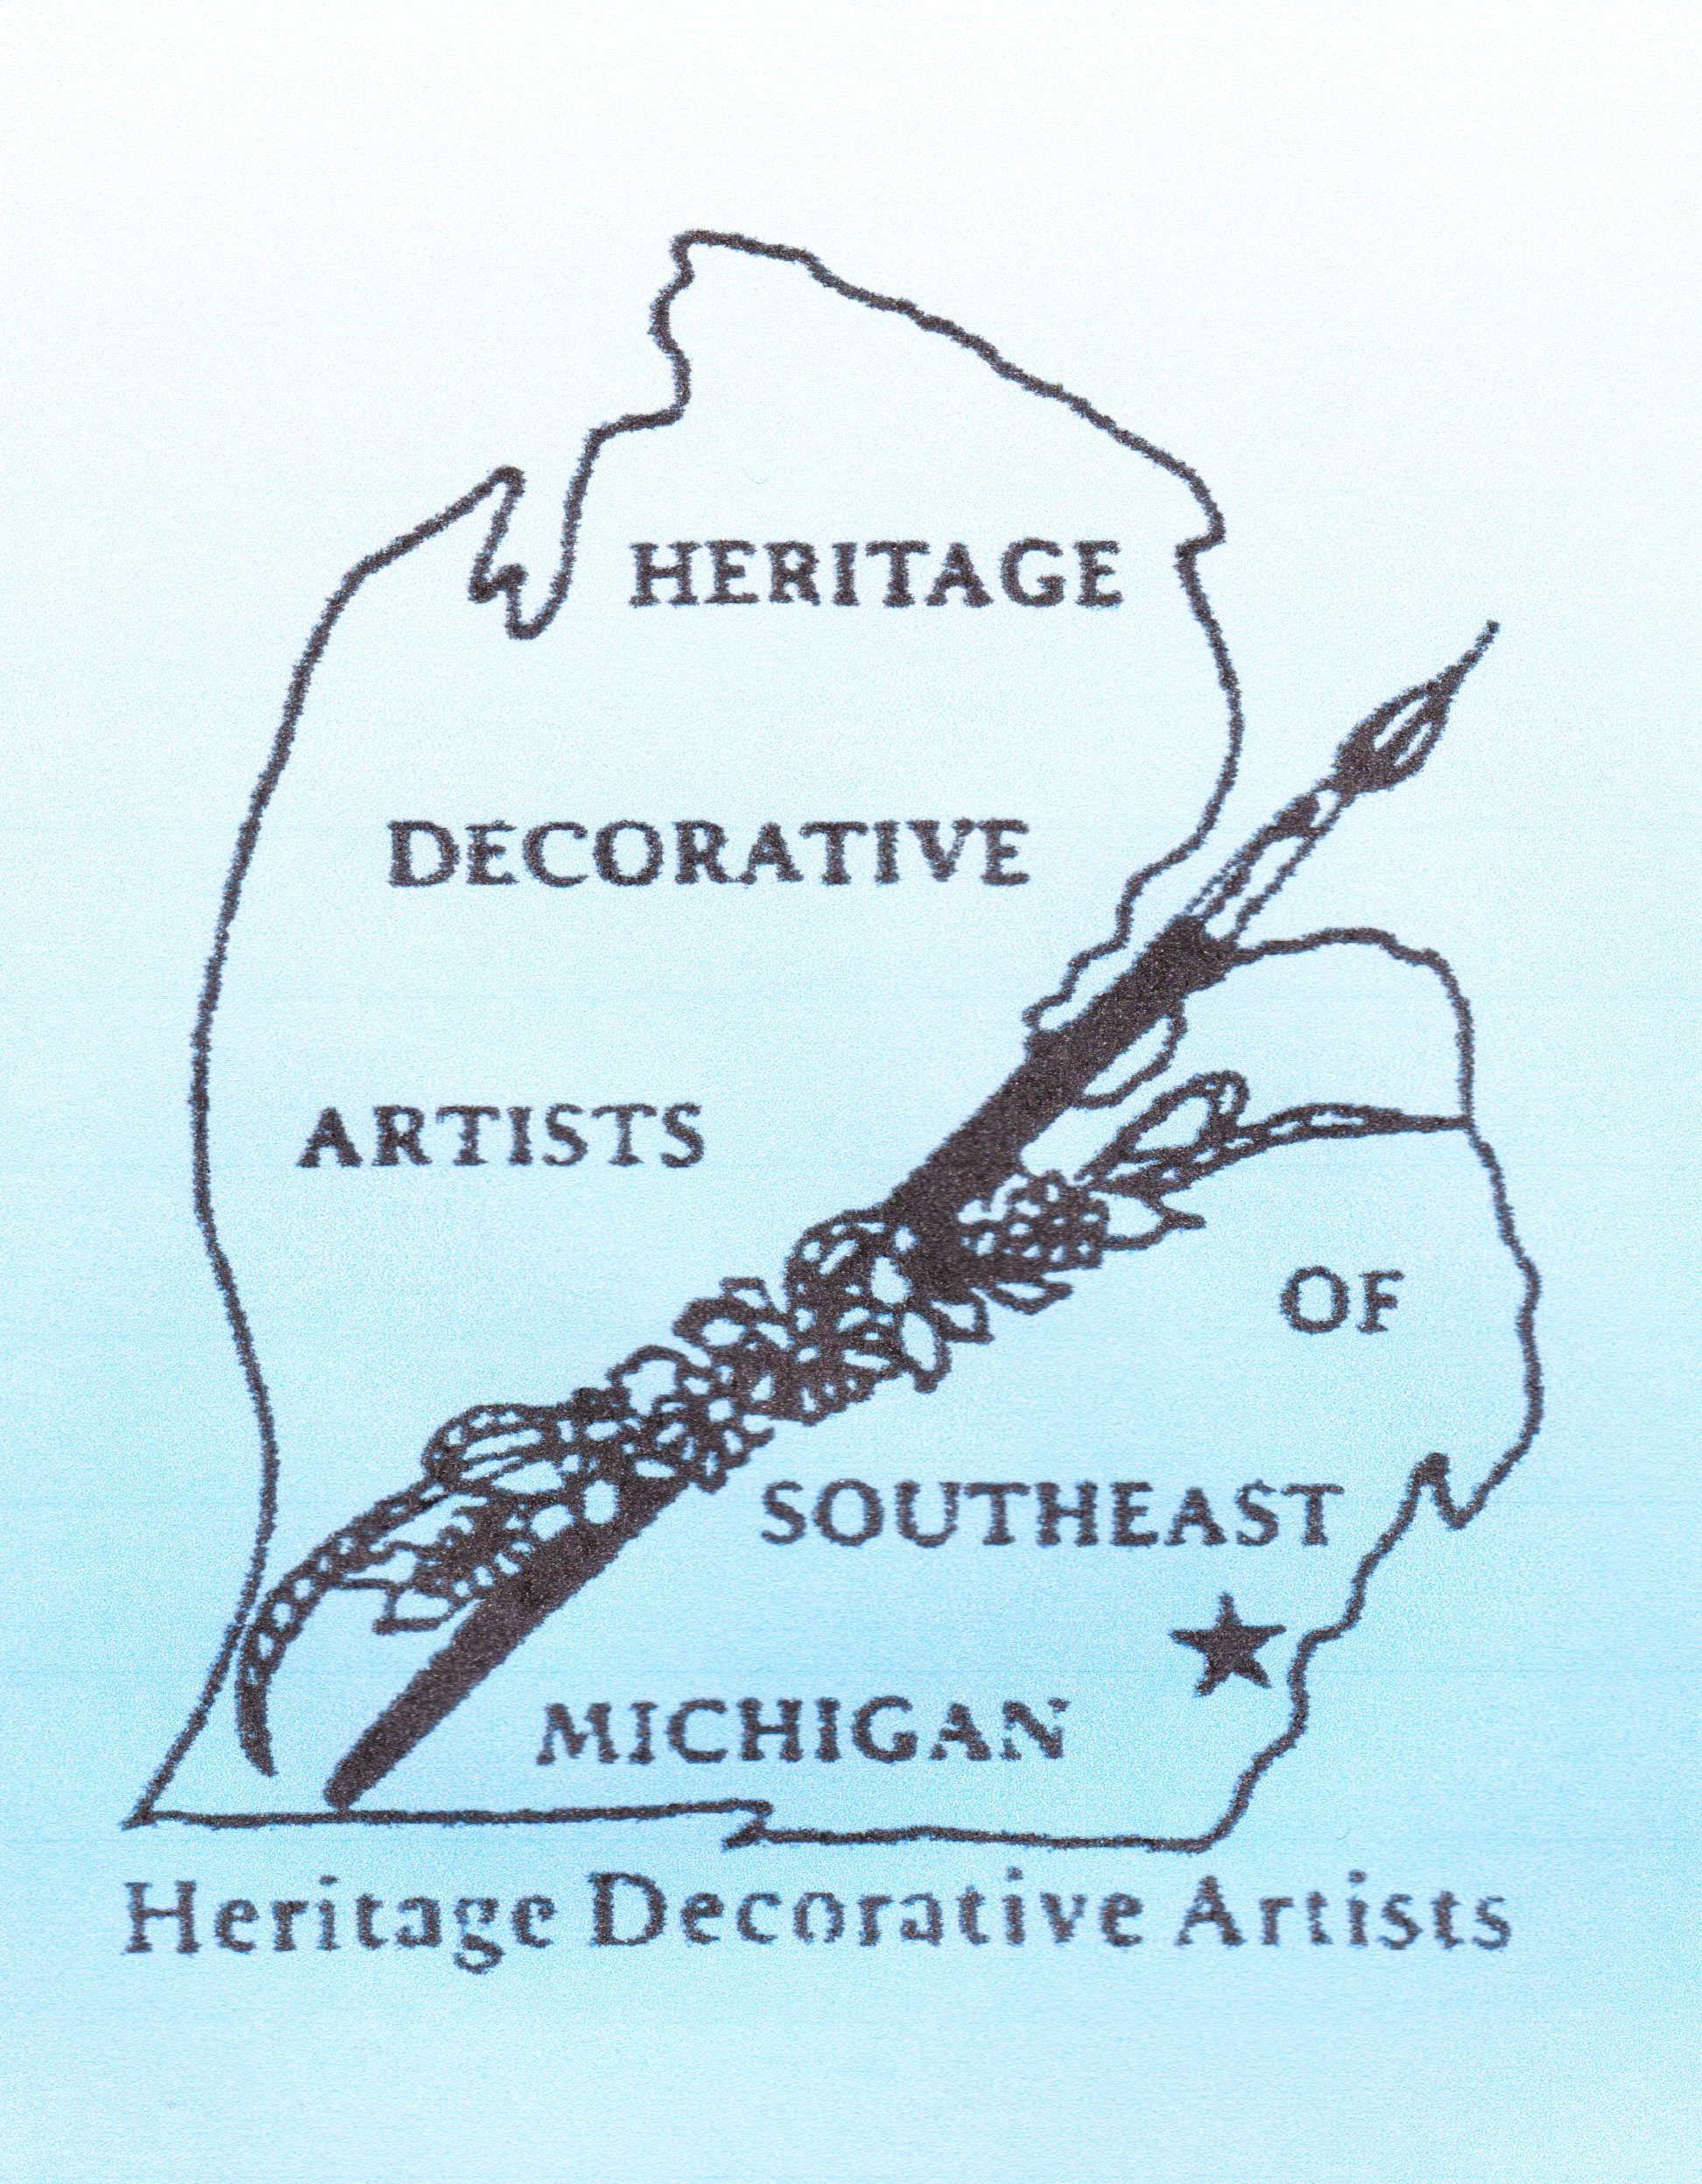 Heritage Decorative Artists